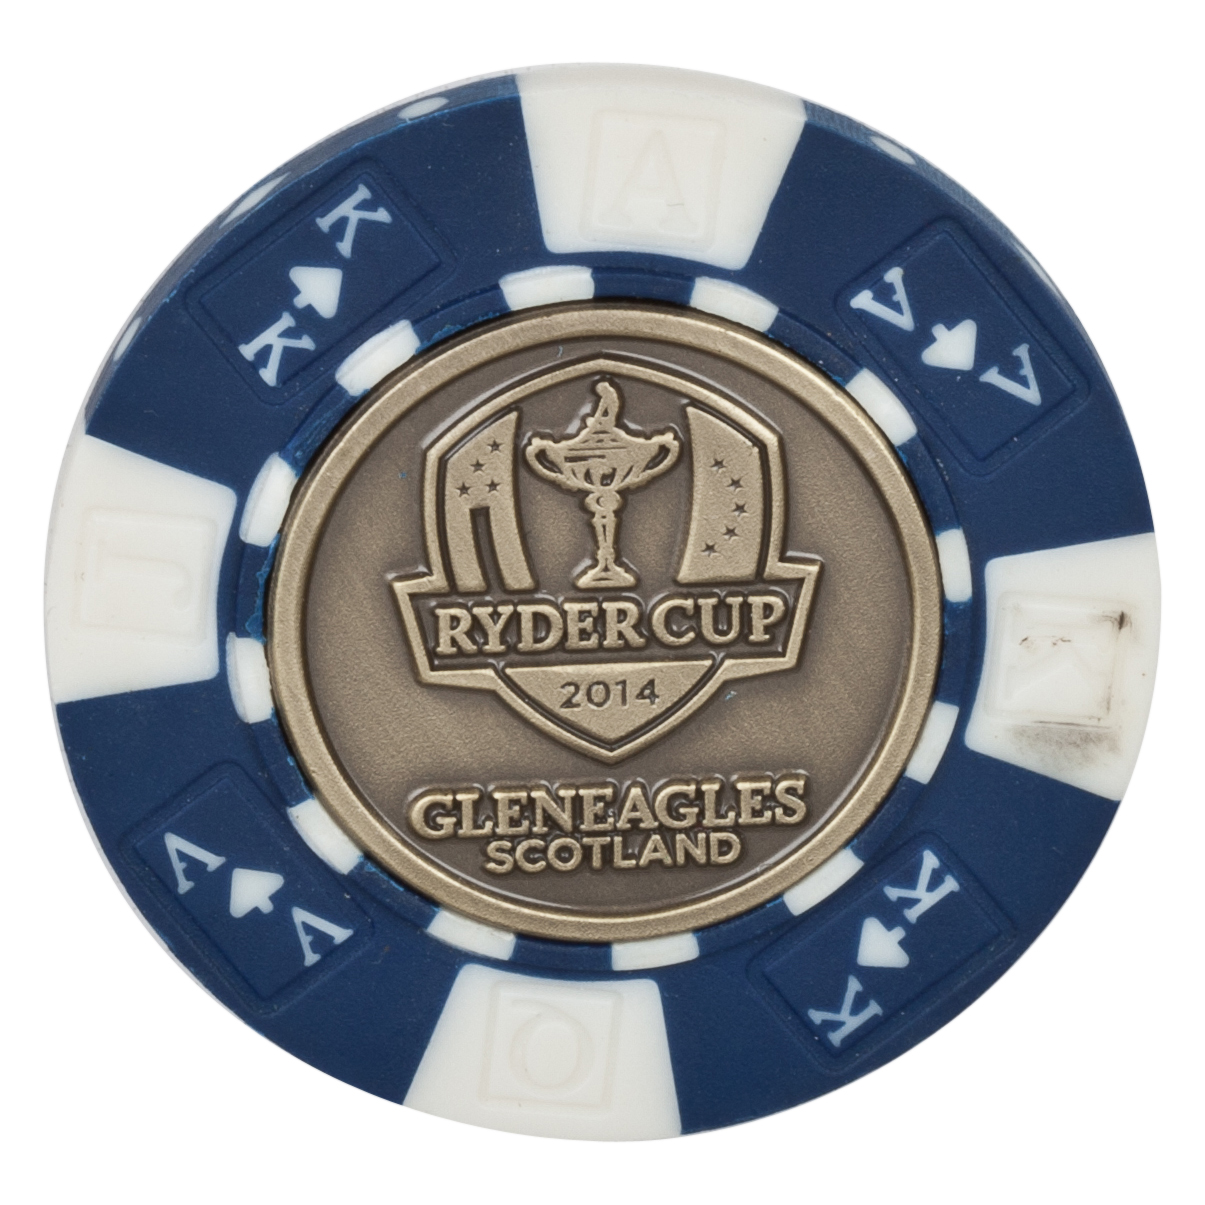 The Ryder Cup Gleneagles 2014 Poker Chip  - Full Colour